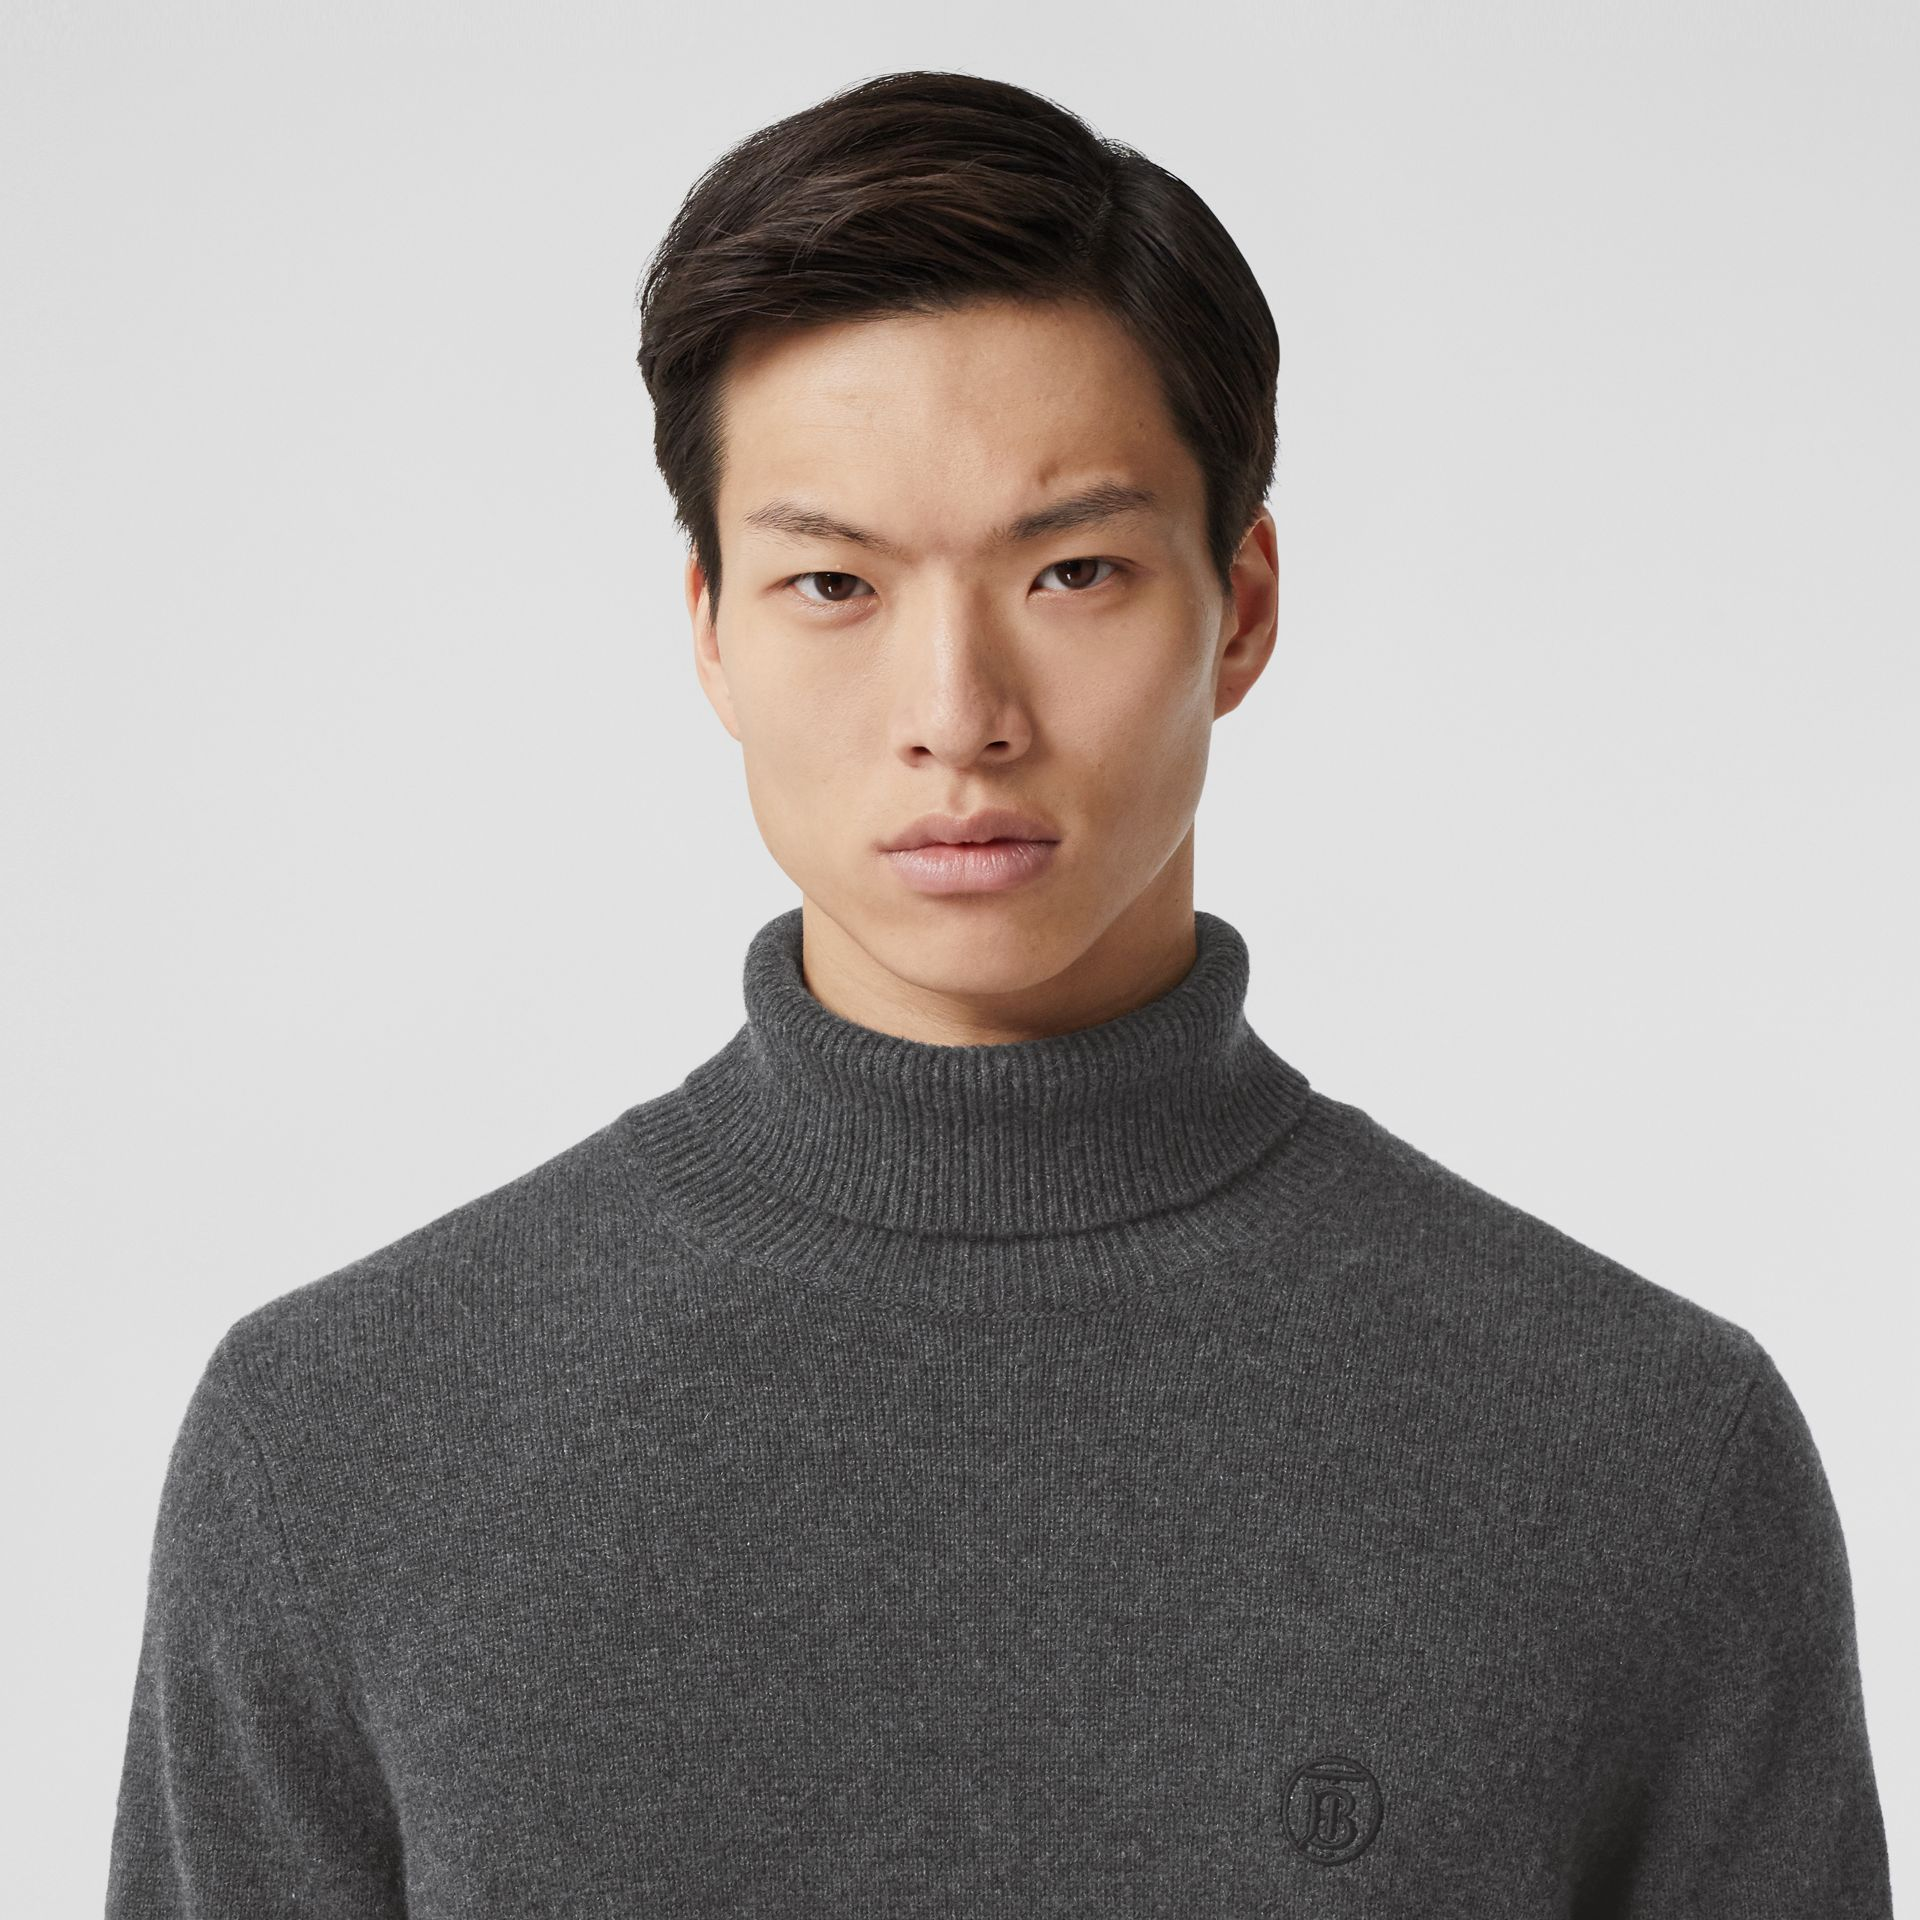 Monogram Motif Cashmere Roll-neck Sweater in Charcoal - Men | Burberry - gallery image 1